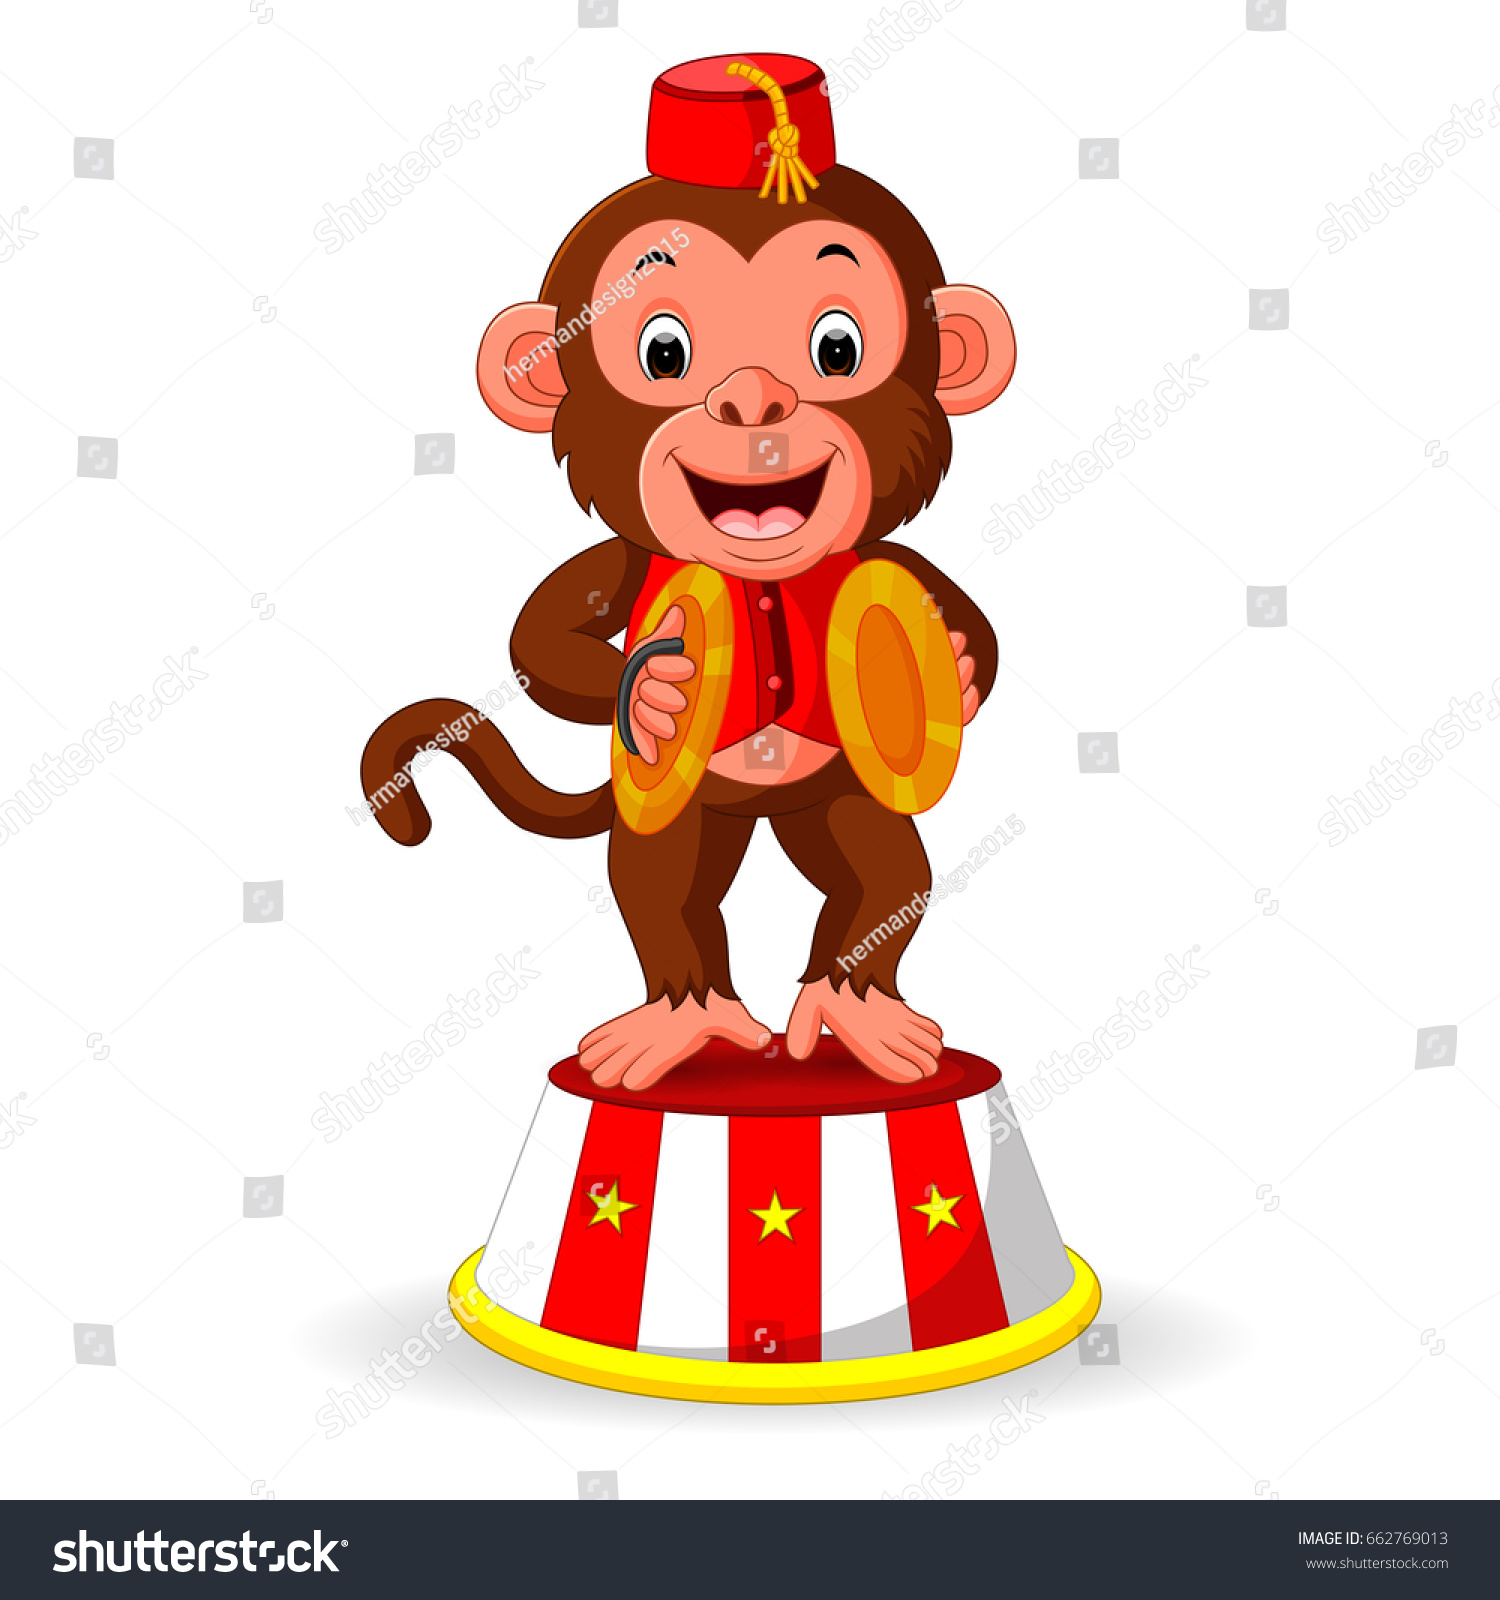 Cute Monkey Playing Percussion Hand Cymbals Stock Illustration ...